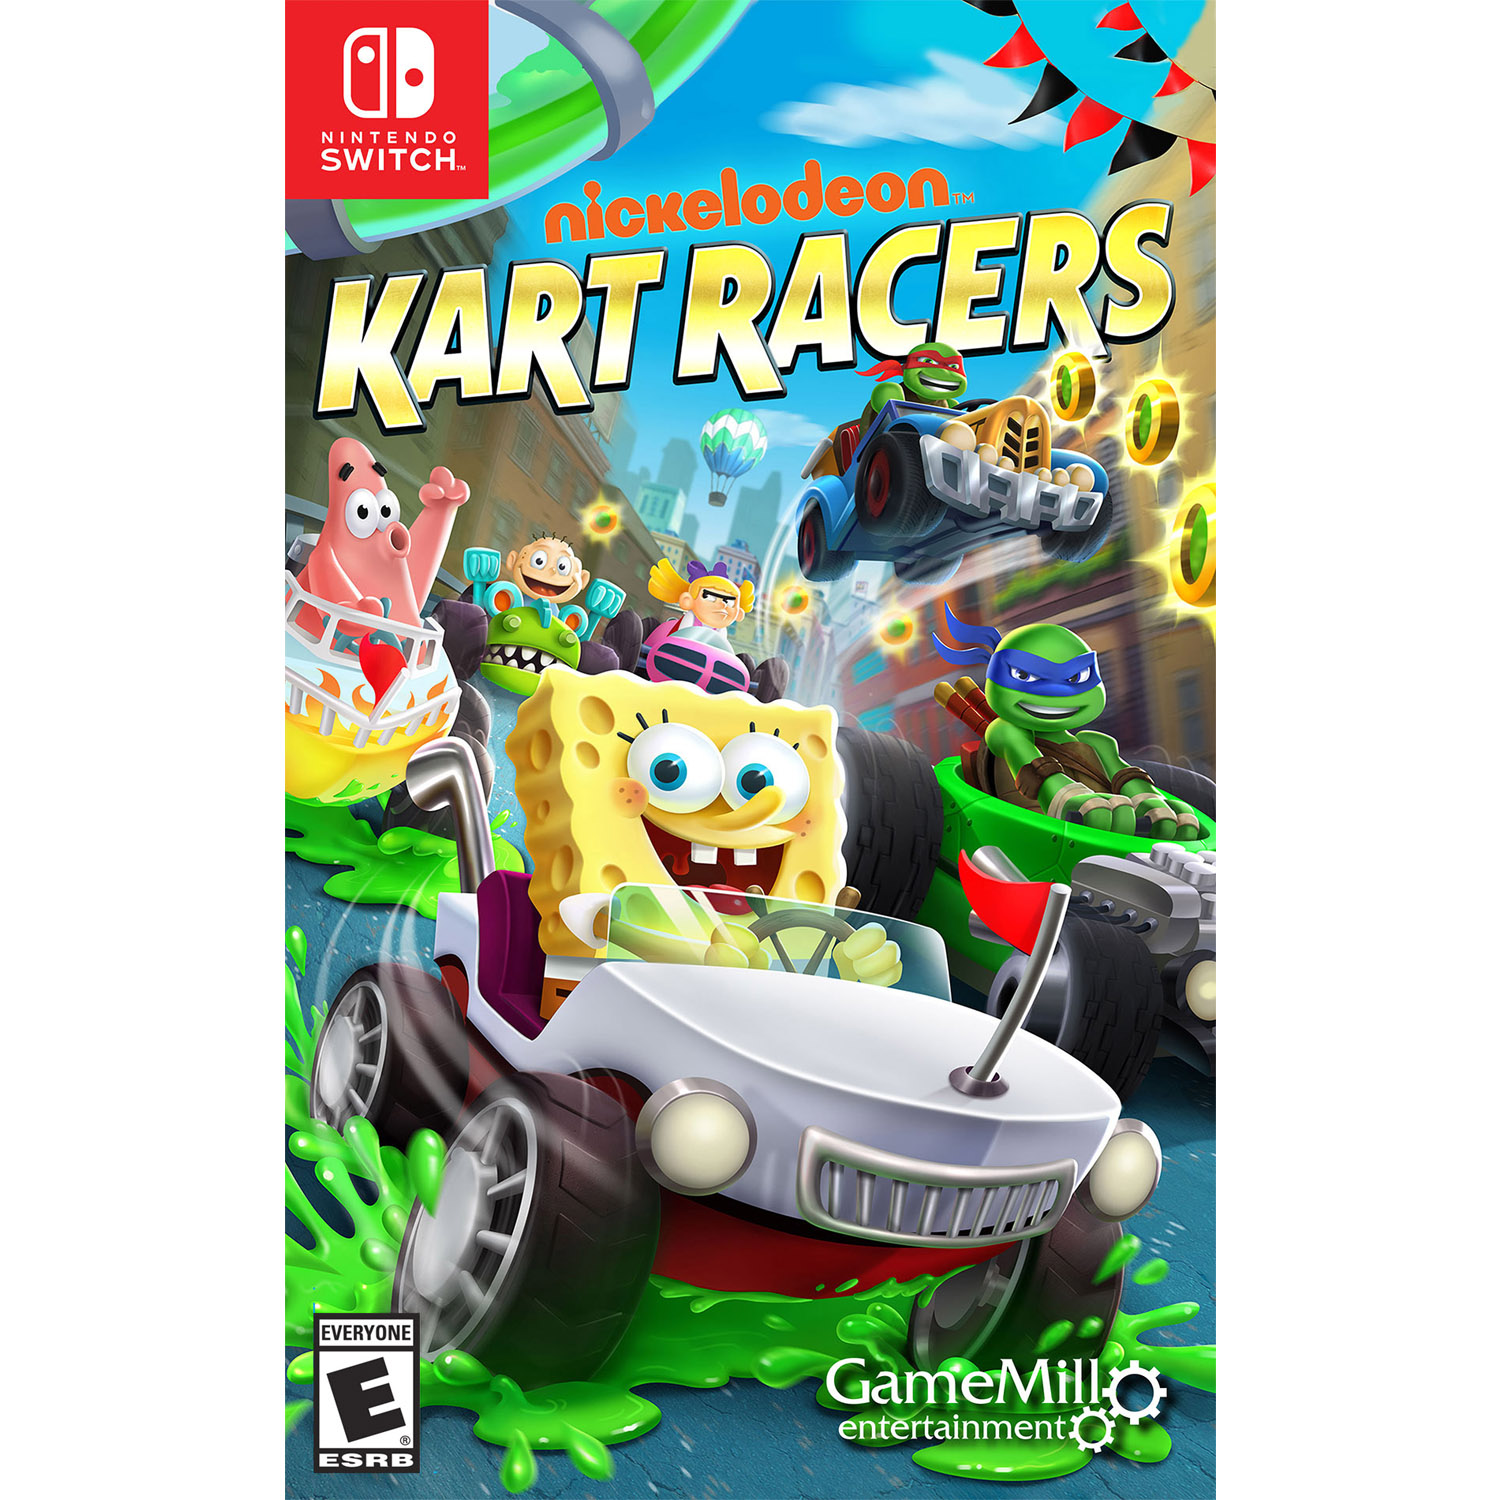 Nickelodeon Kart Racers, Gamemill, Nintendo Switch, 856131008084